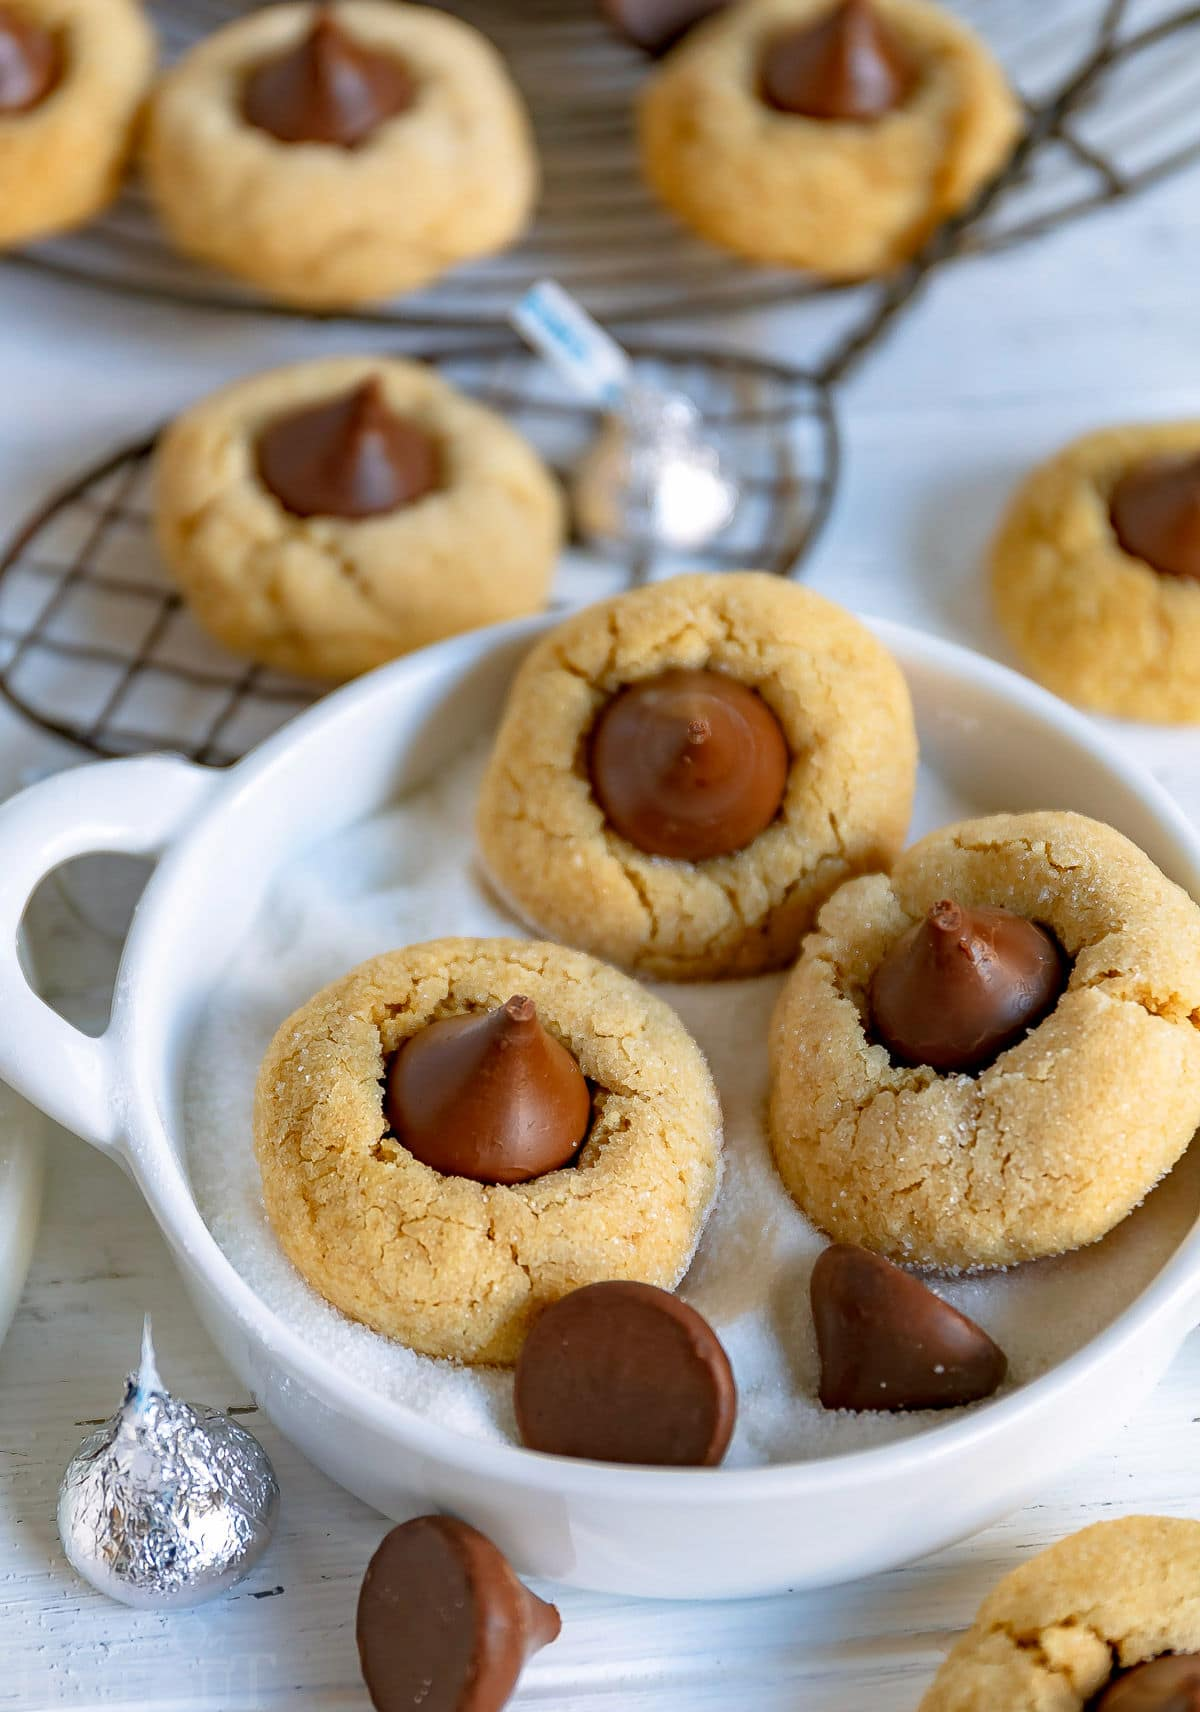 three peanut butter blossom cookies in small white bowl with sugar in it and there are more cookies in background